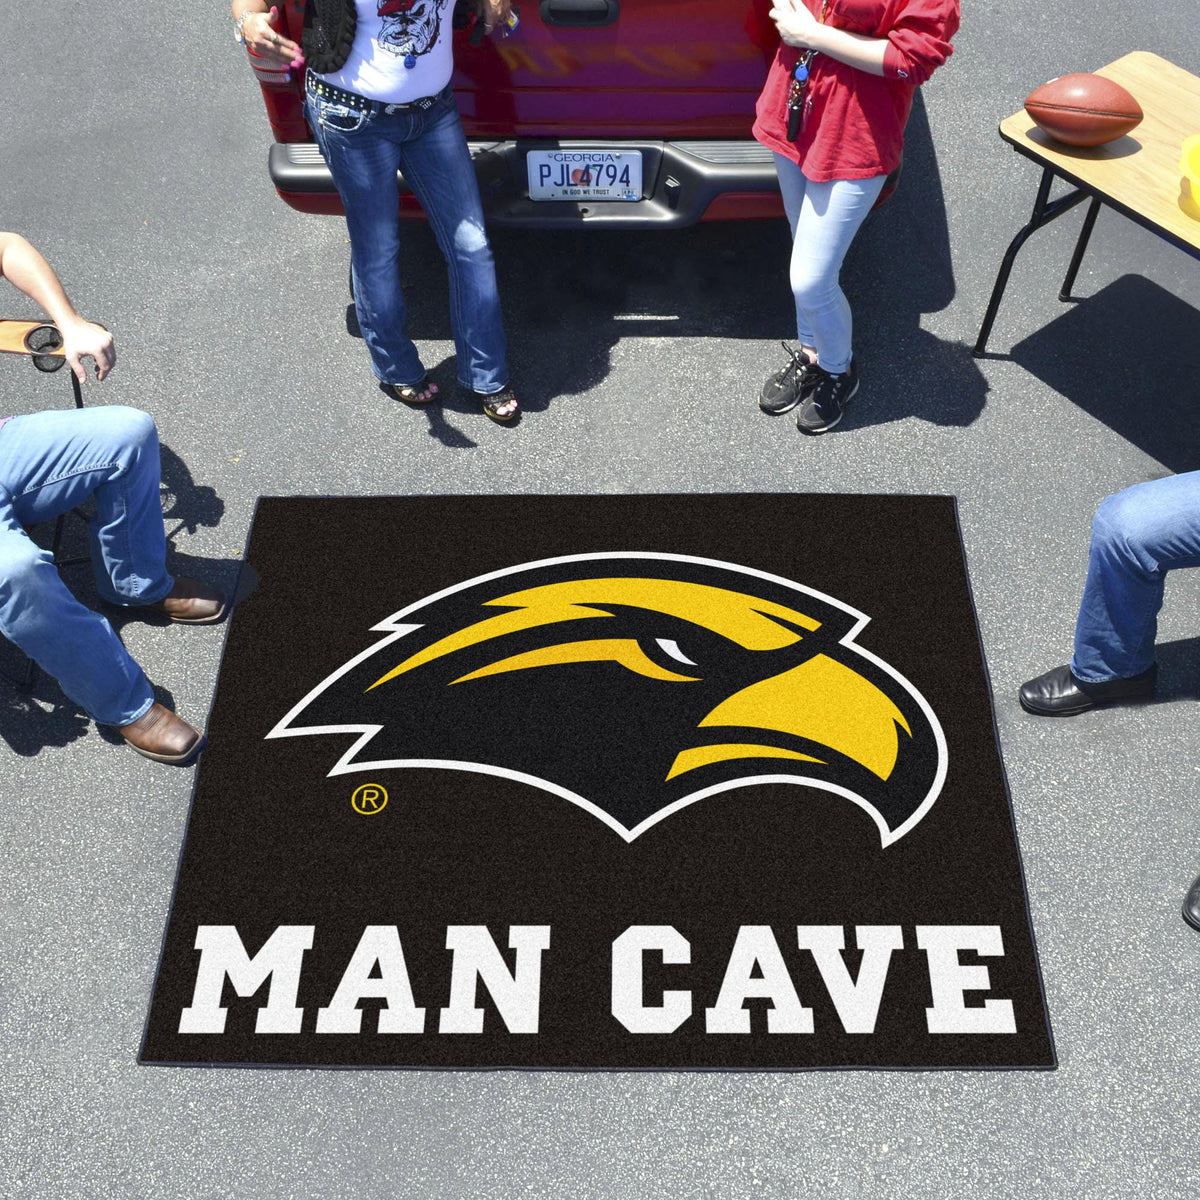 Collegiate - Man Cave Tailgater Collegiate Mats, Rectangular Mats, Man Cave Tailgater, Collegiate, Home Fan Mats Southern Miss